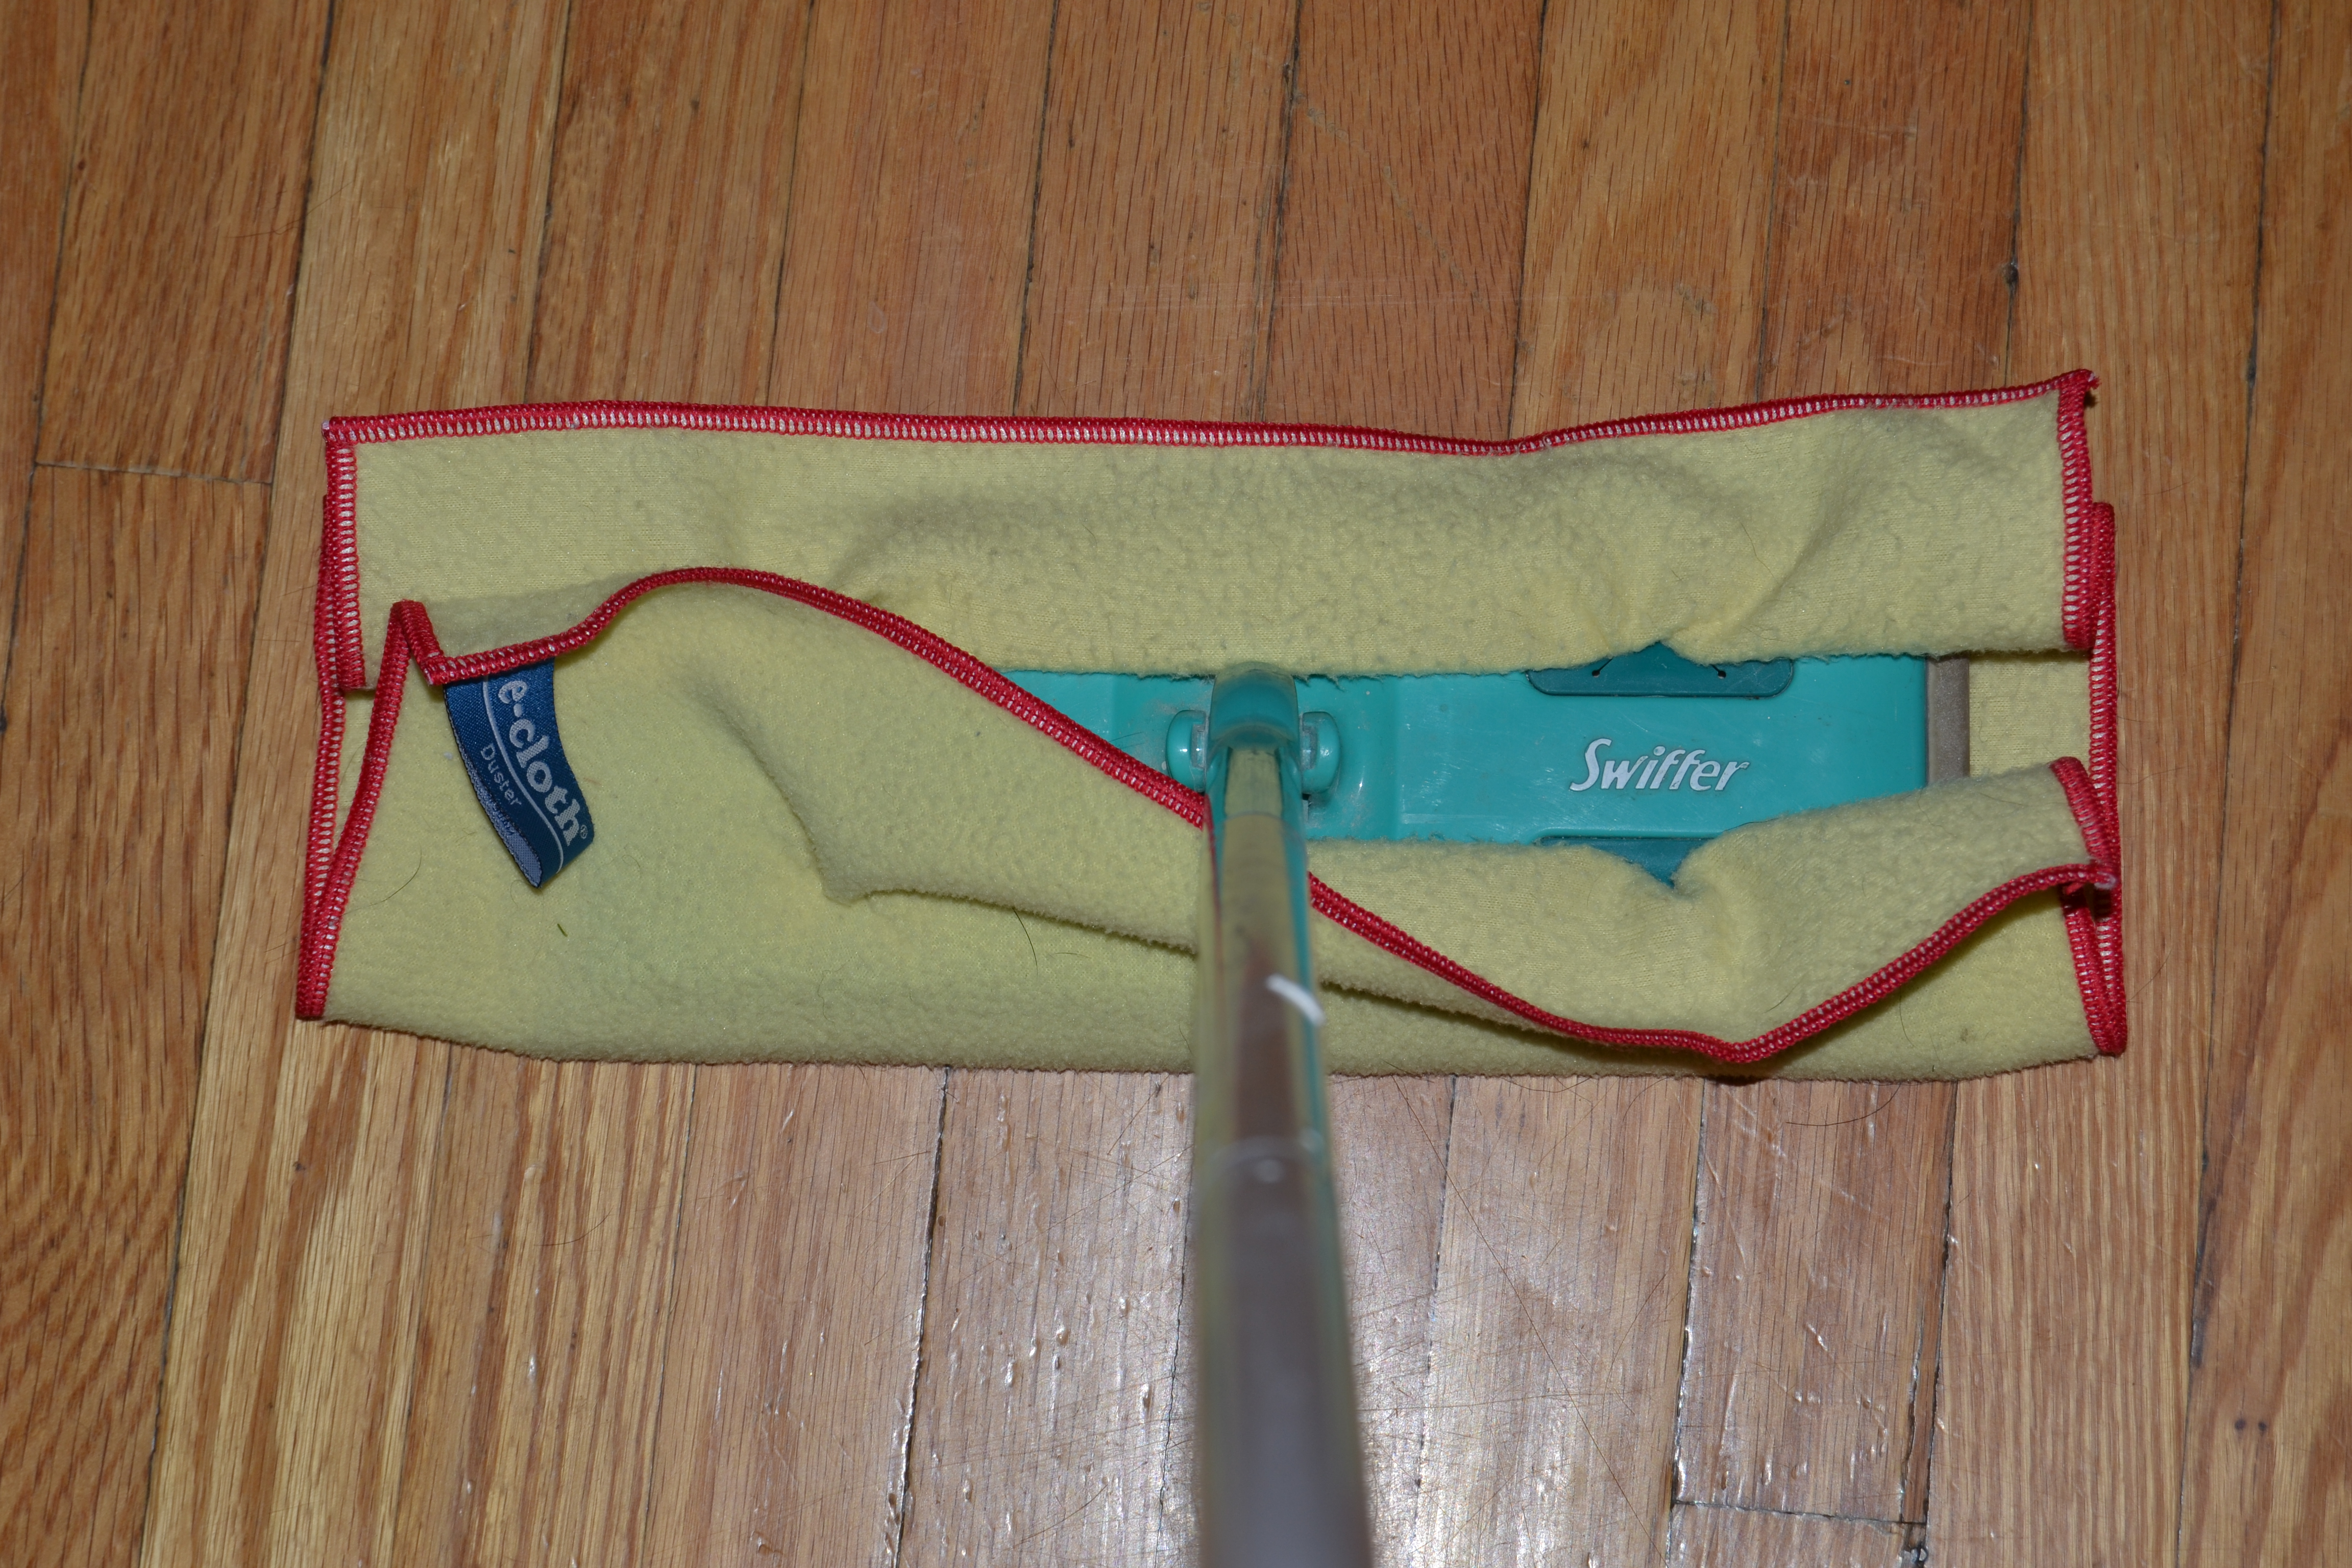 ecloth washable & reusable Dusting Microfiber Cloth - fits easily onto my Swiffer